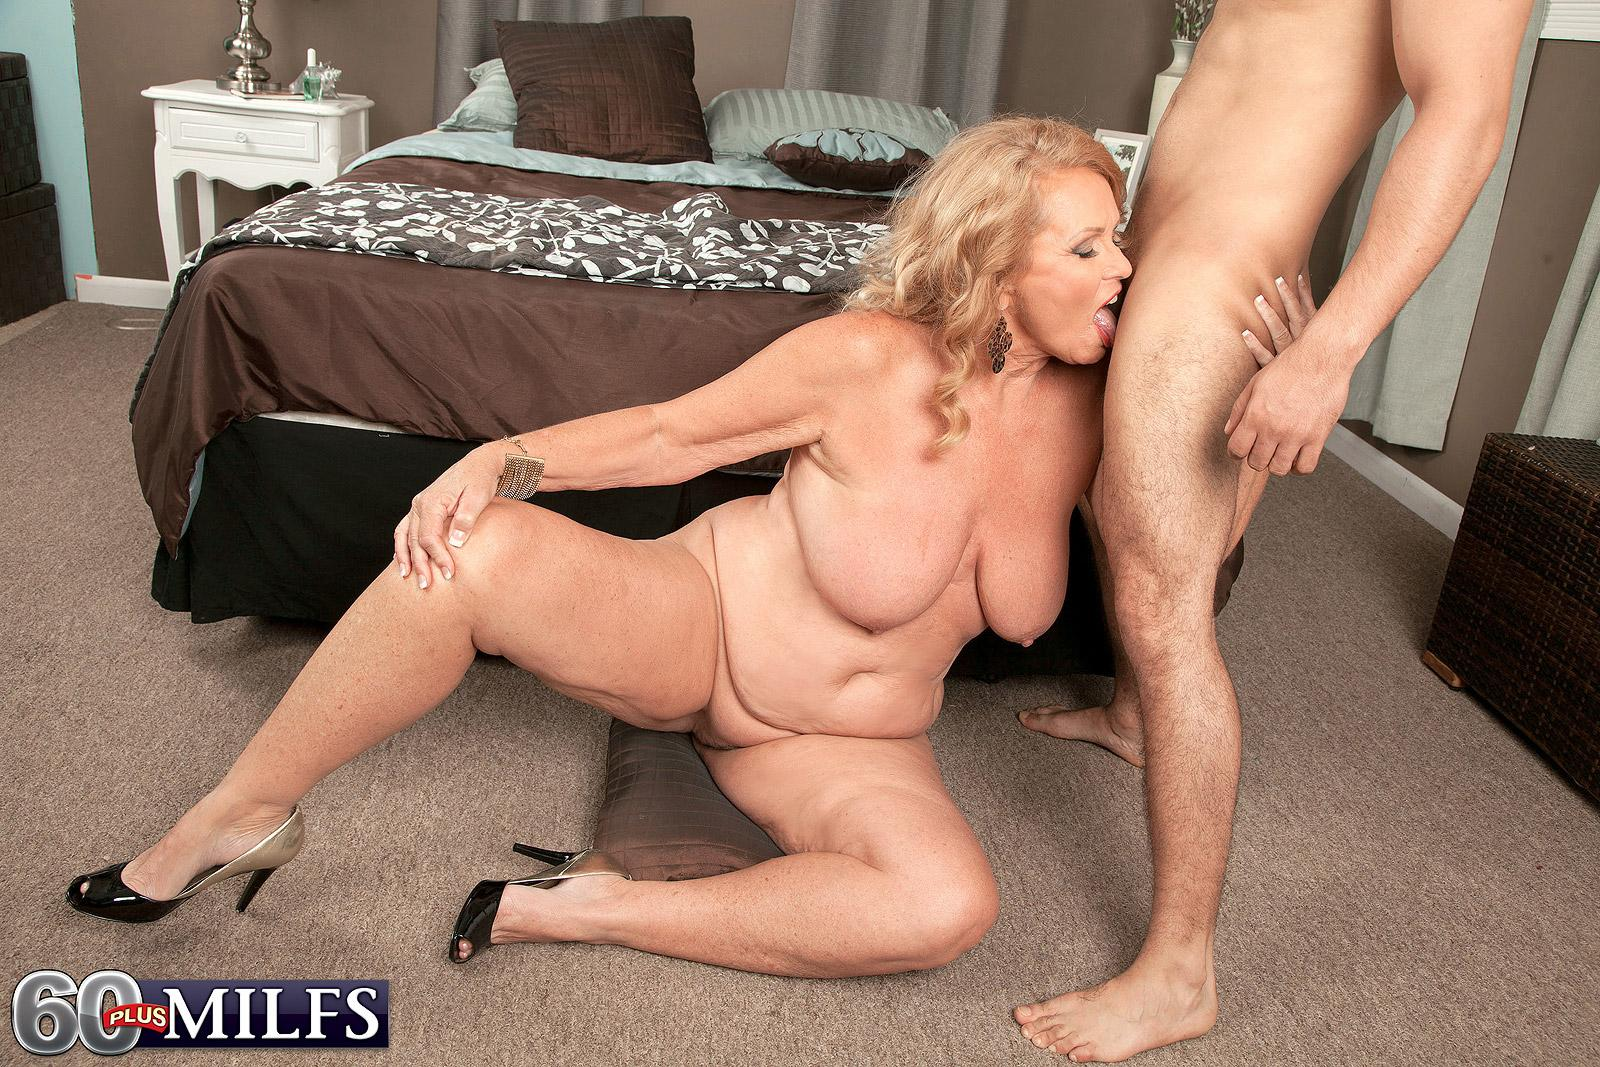 Bosomy blond grandmother giving blowjob on knees before XXX doggie-style sex